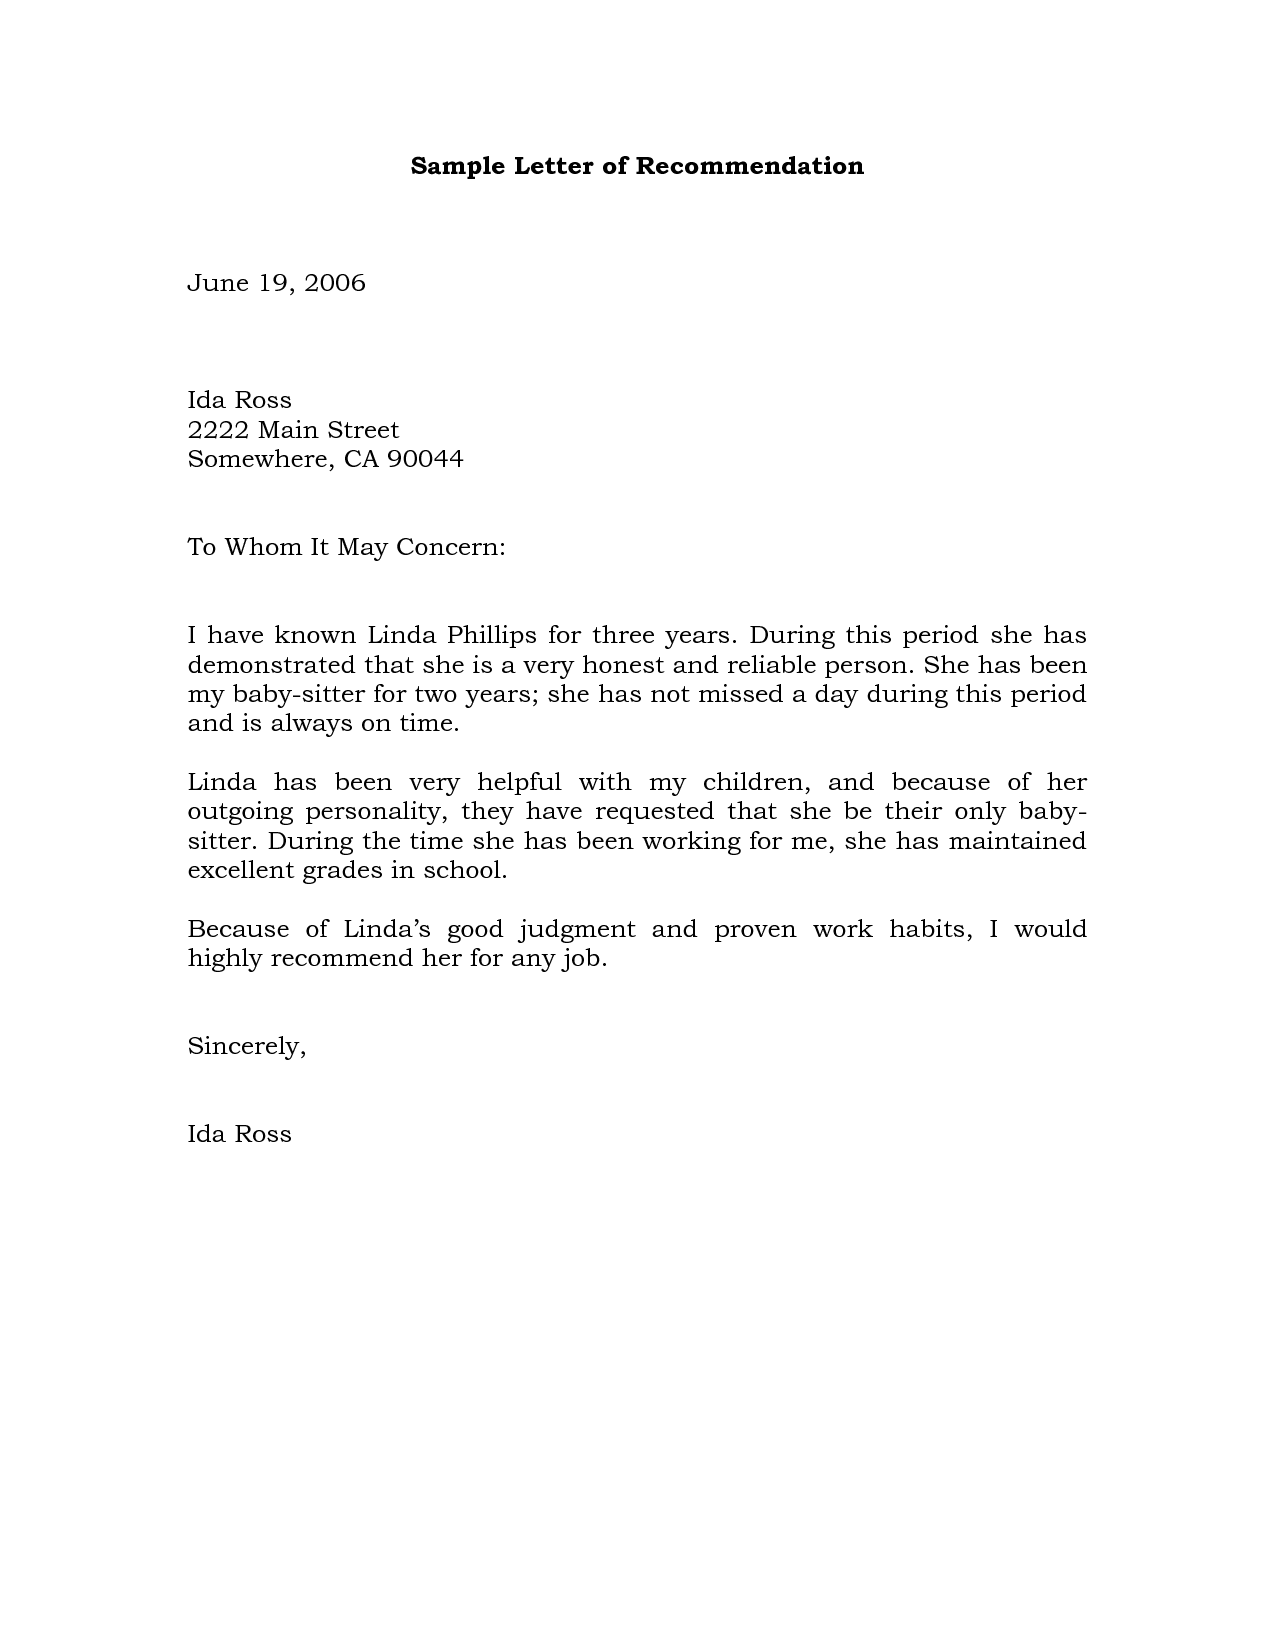 Sample Business Letter Of Recommendation Yolarnetonic